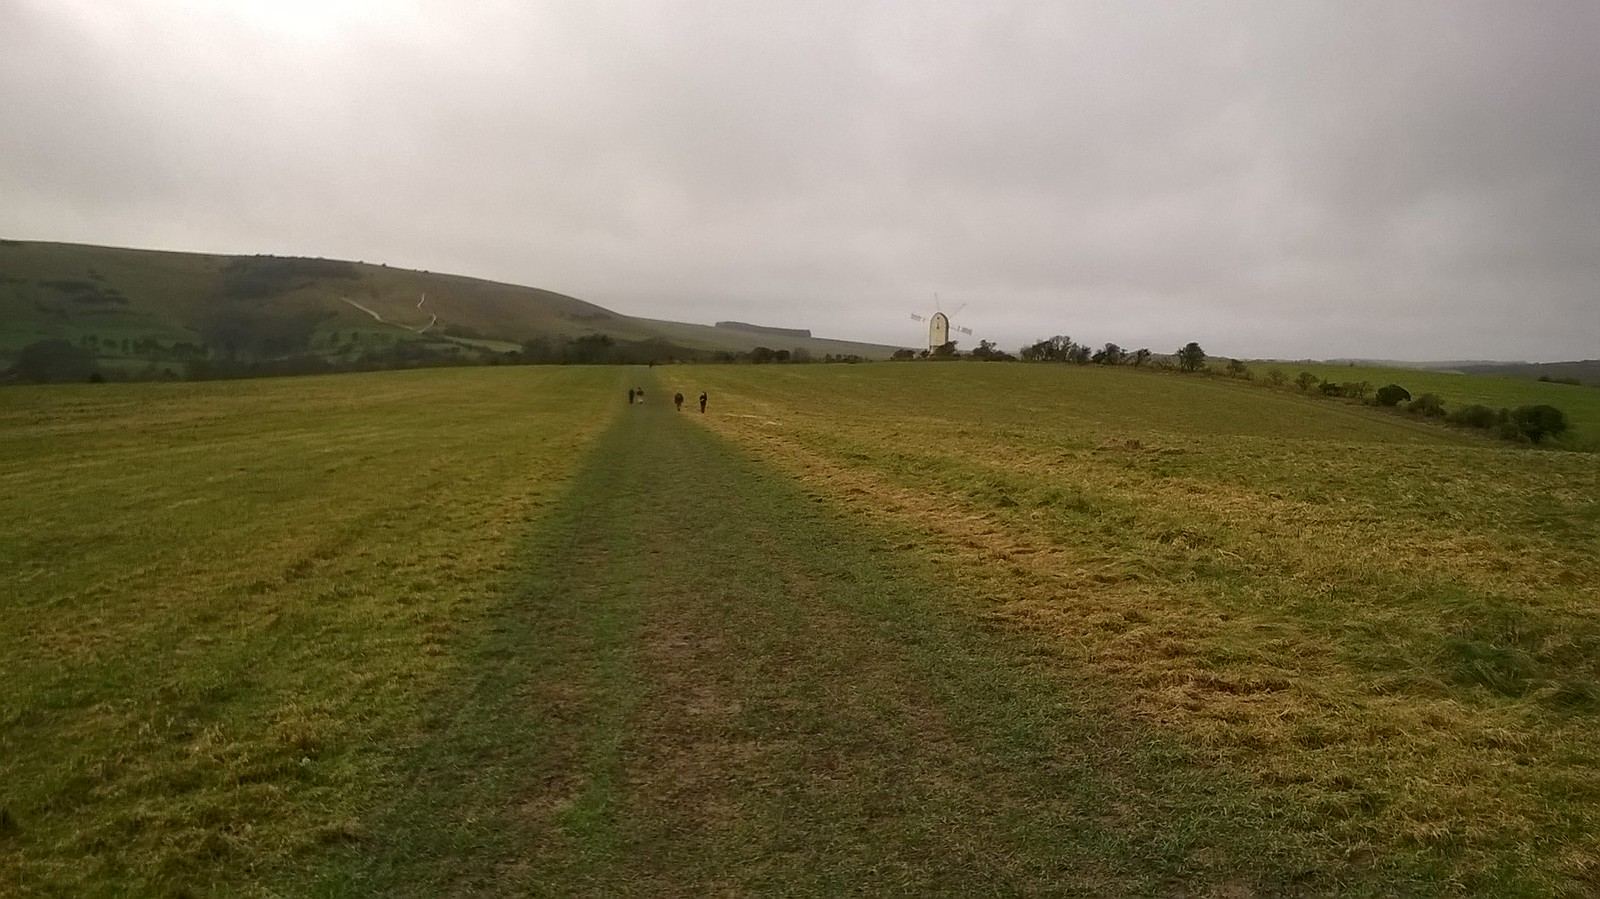 Saturday Walkers approaching renovated windmill near Kingston at the foot of the South Downs.